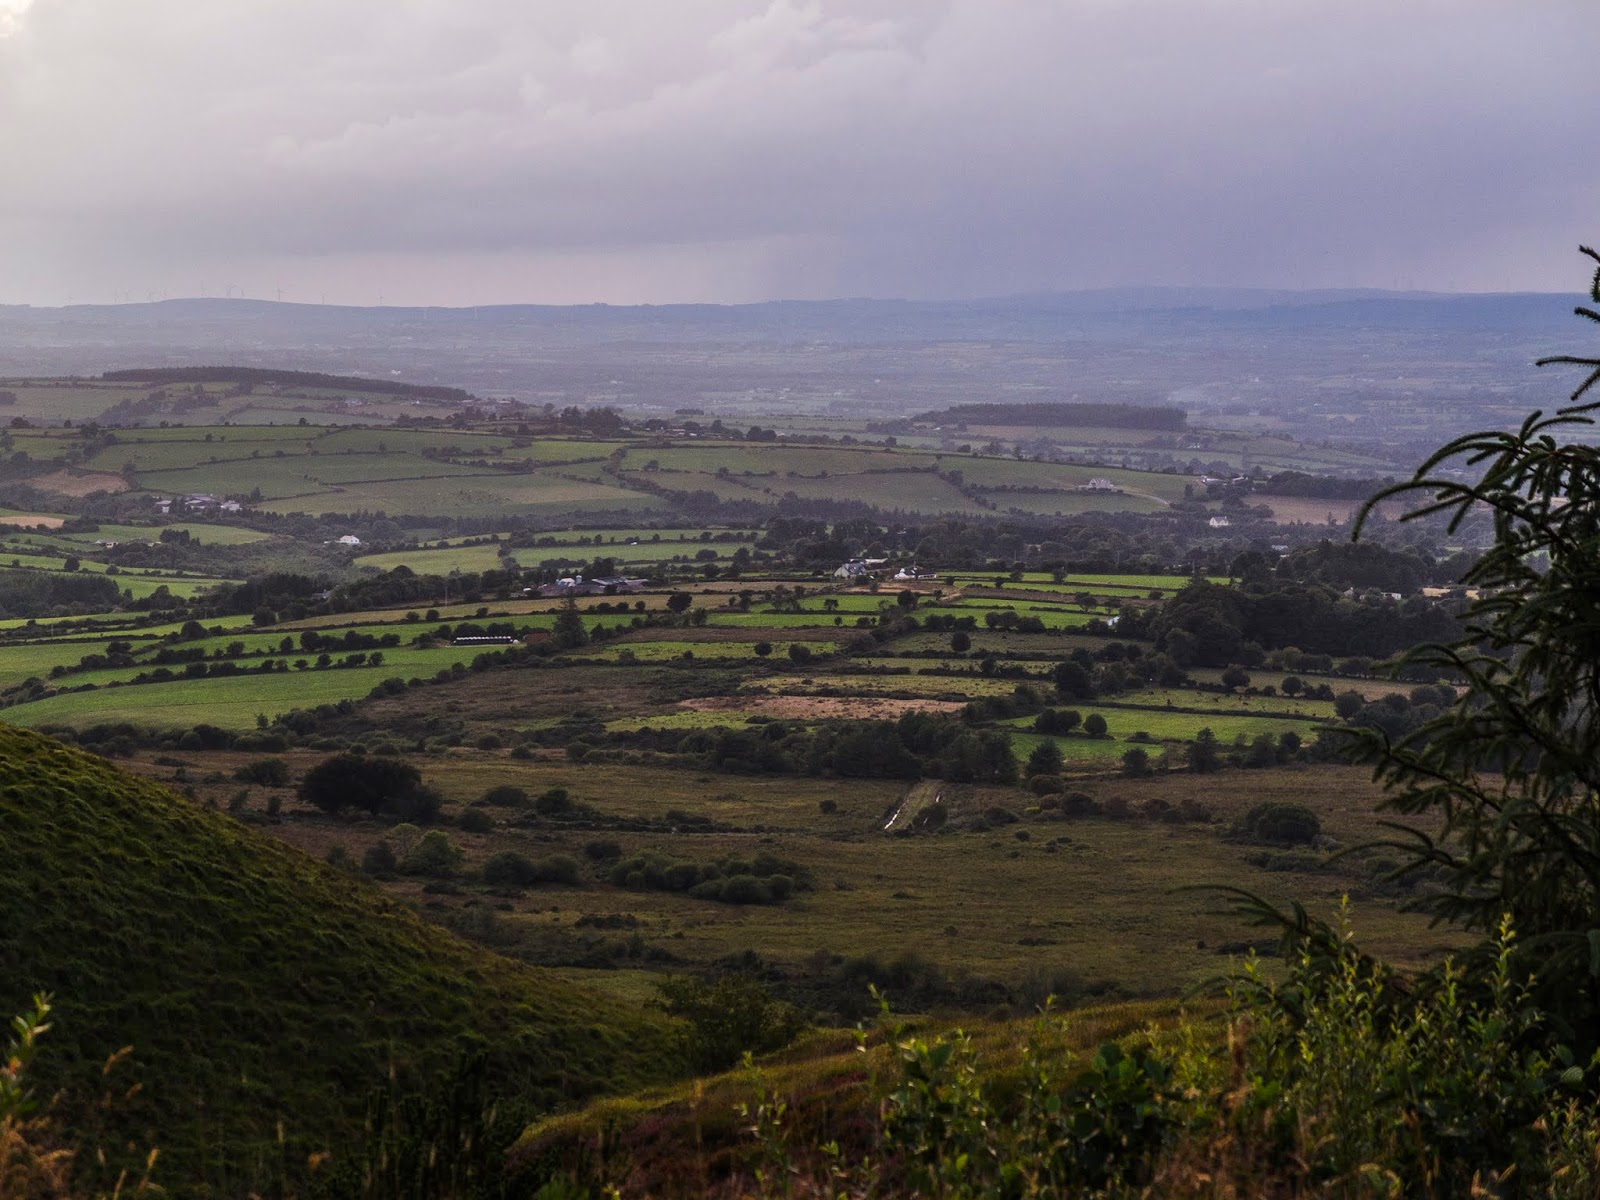 View down a valley in the Boggeragh Mountains in County Cork at sunset.